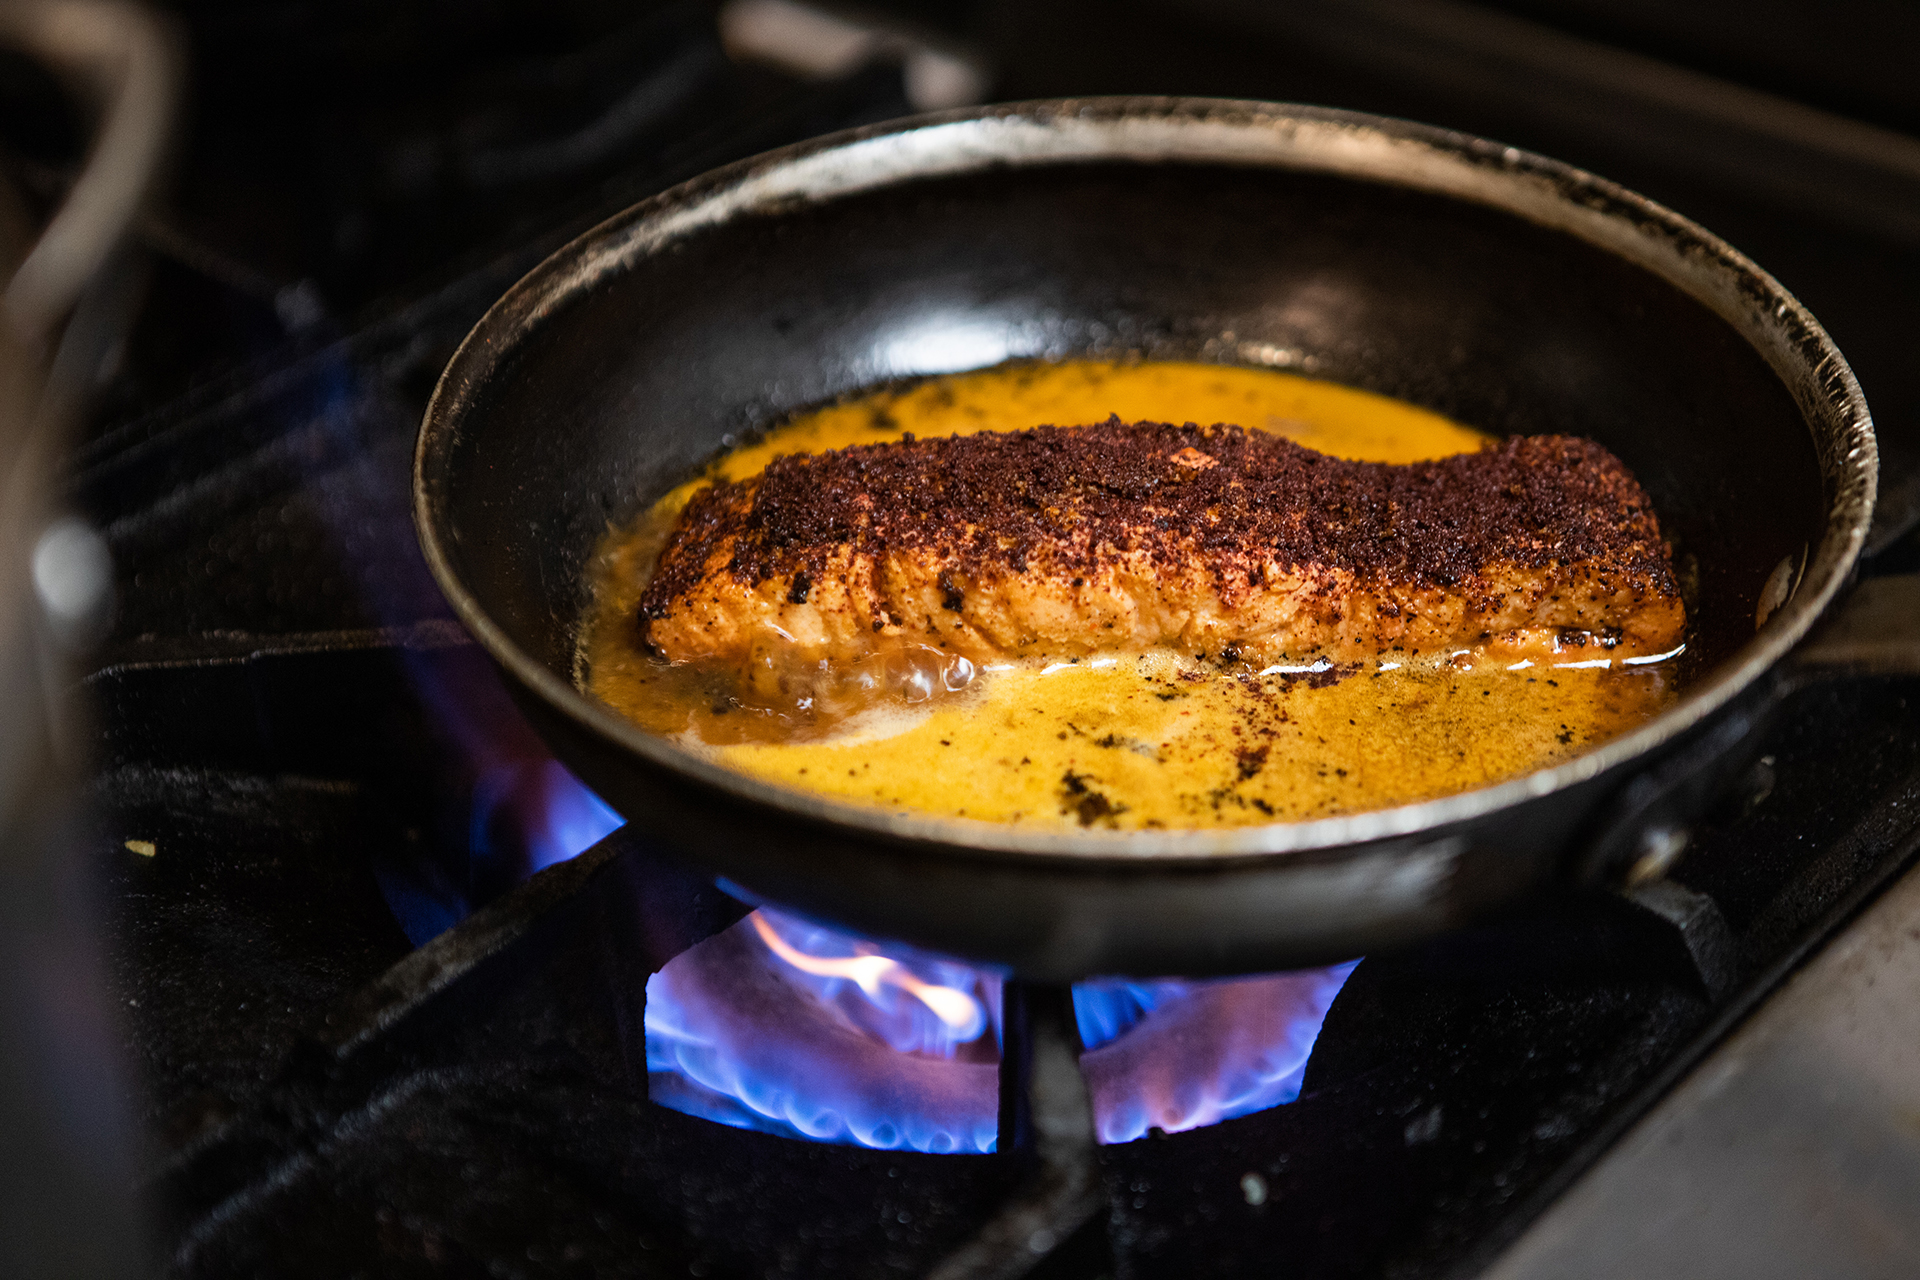 The Mediterranean Salmon is pictured cooking over fire in a sauté pan with a brightly colored orange sauce. A vibrant blue and purple stove top flame can be seen underneath the sauté pan.